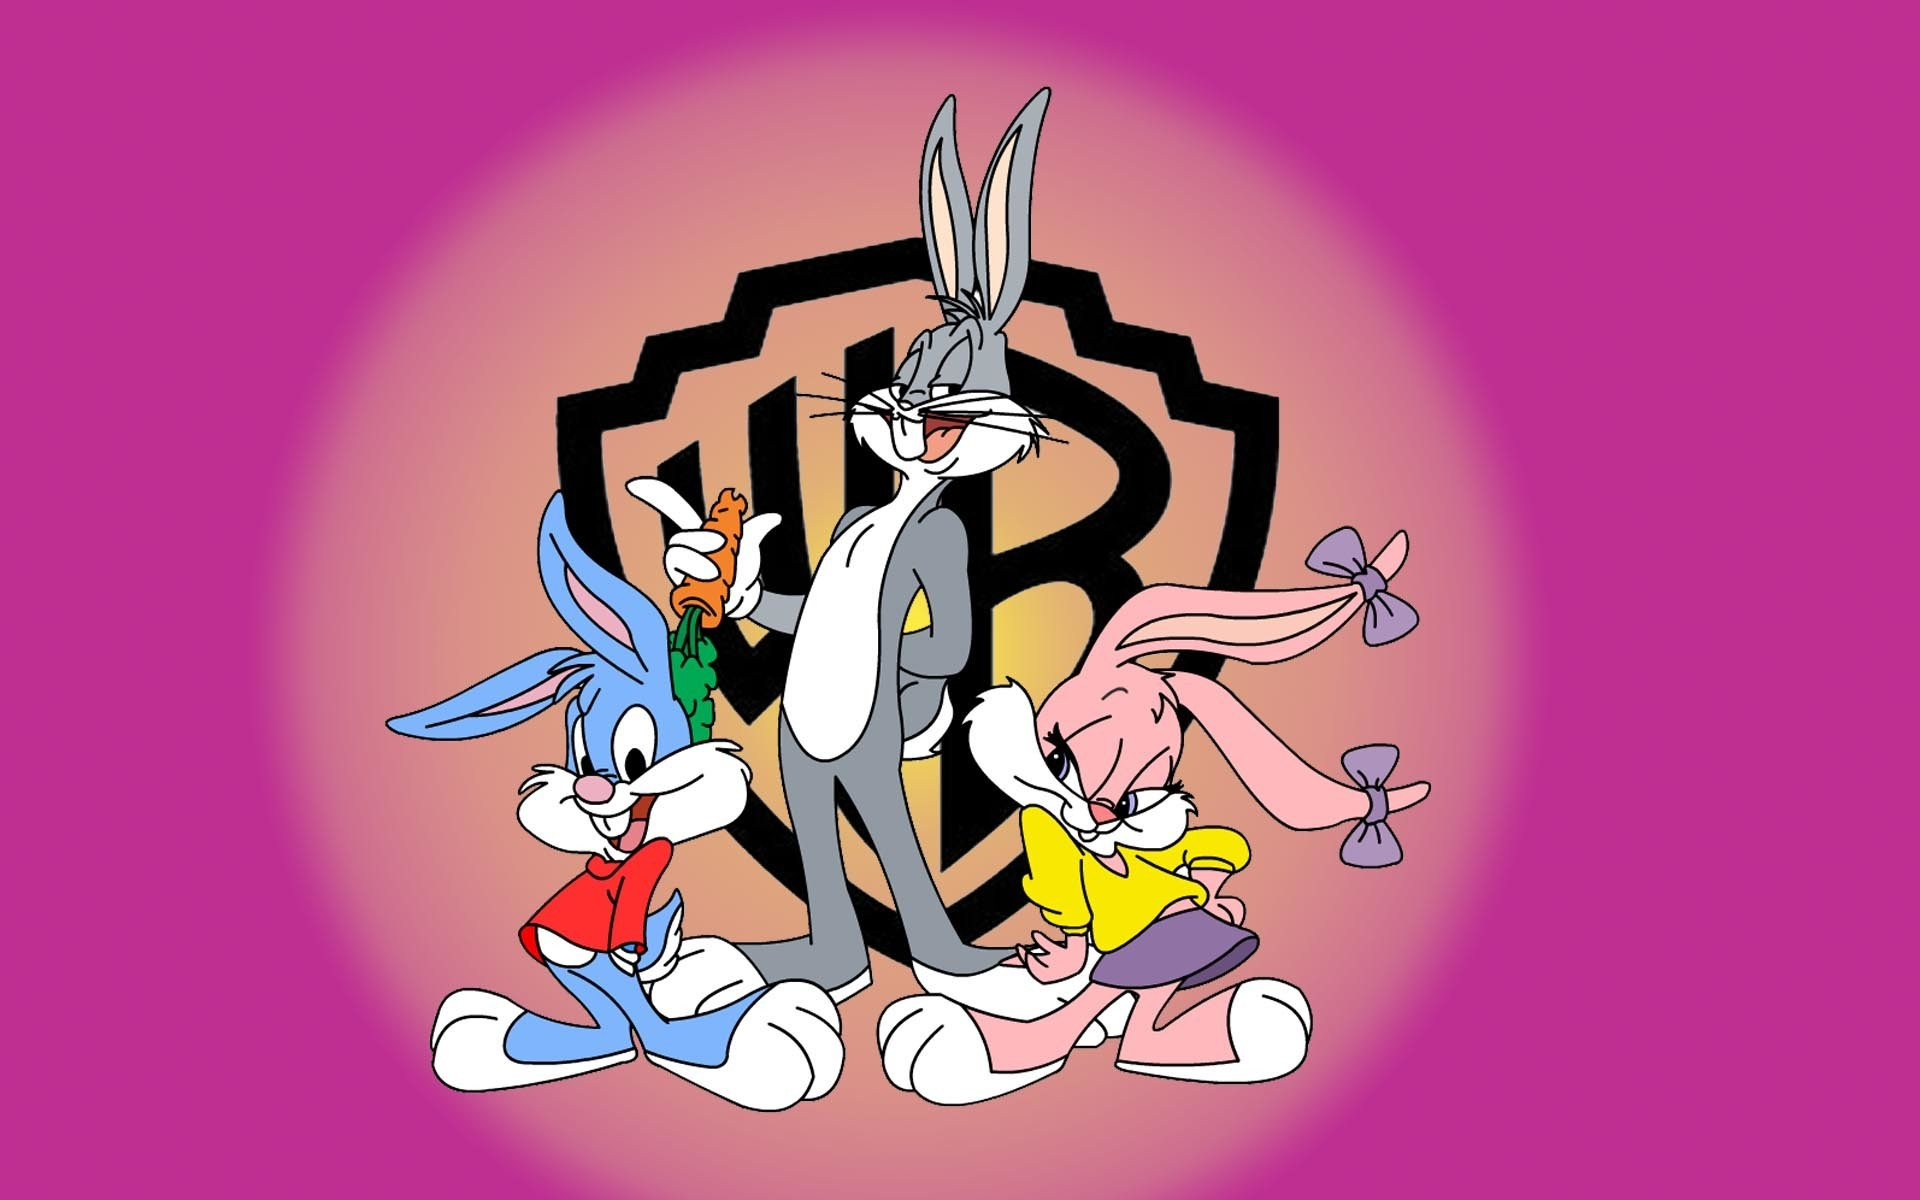 Res: 1920x1200, ... Bugs Bunny Wallpaper 66 Get HD Wallpapers Free